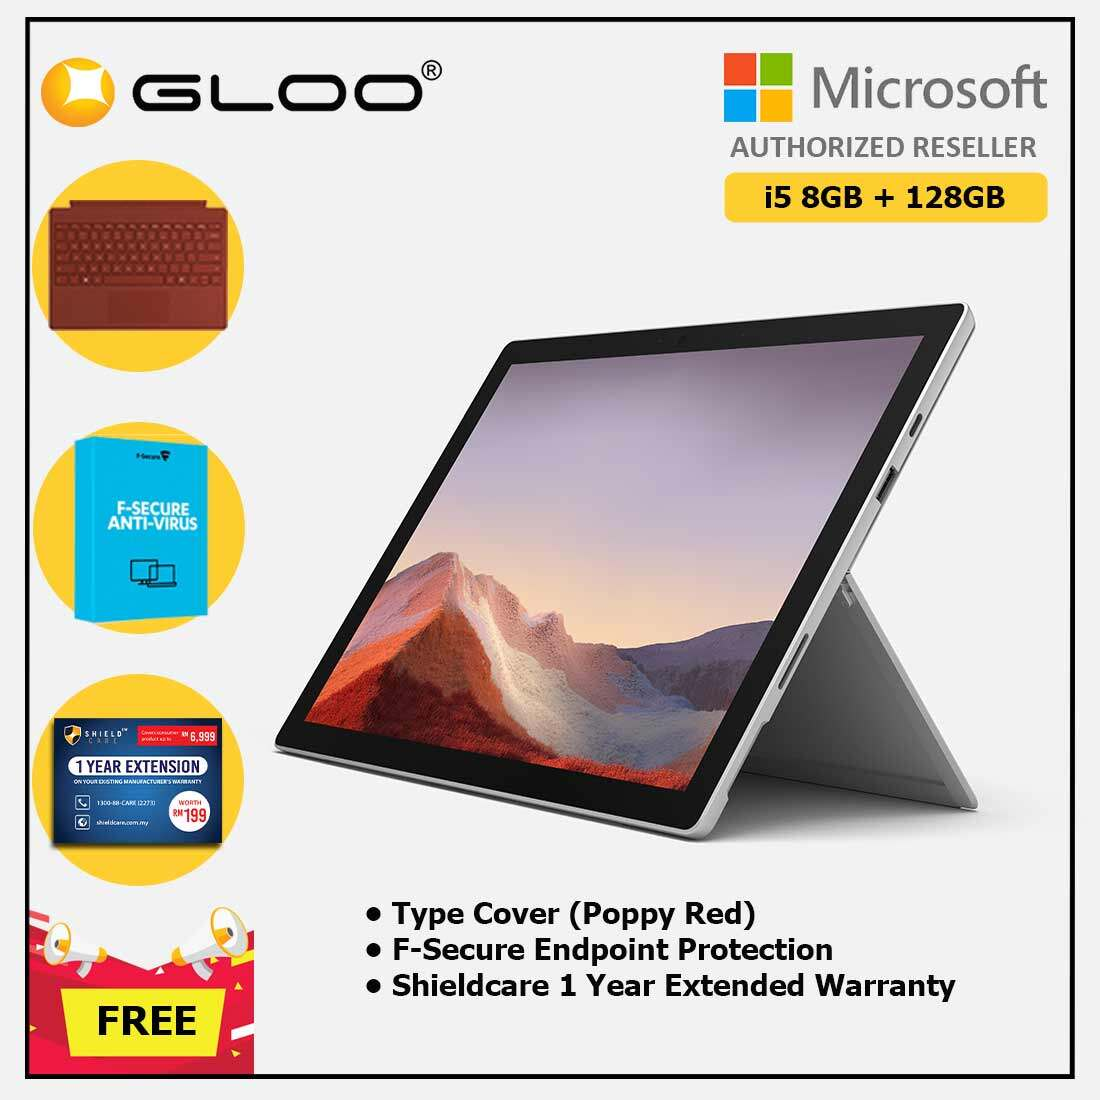 Microsoft Surface Pro 7 Core i5/8G RAM - 128GB Platinum - VDV-00012 + Surface Pro Type Cover Poppy Red + Shield Care 1 Year + F-Secure 1 Year[FOC RM100 Aeon Voucher 21/3/2020 - 31/3/2020 While Stock Last] Malaysia